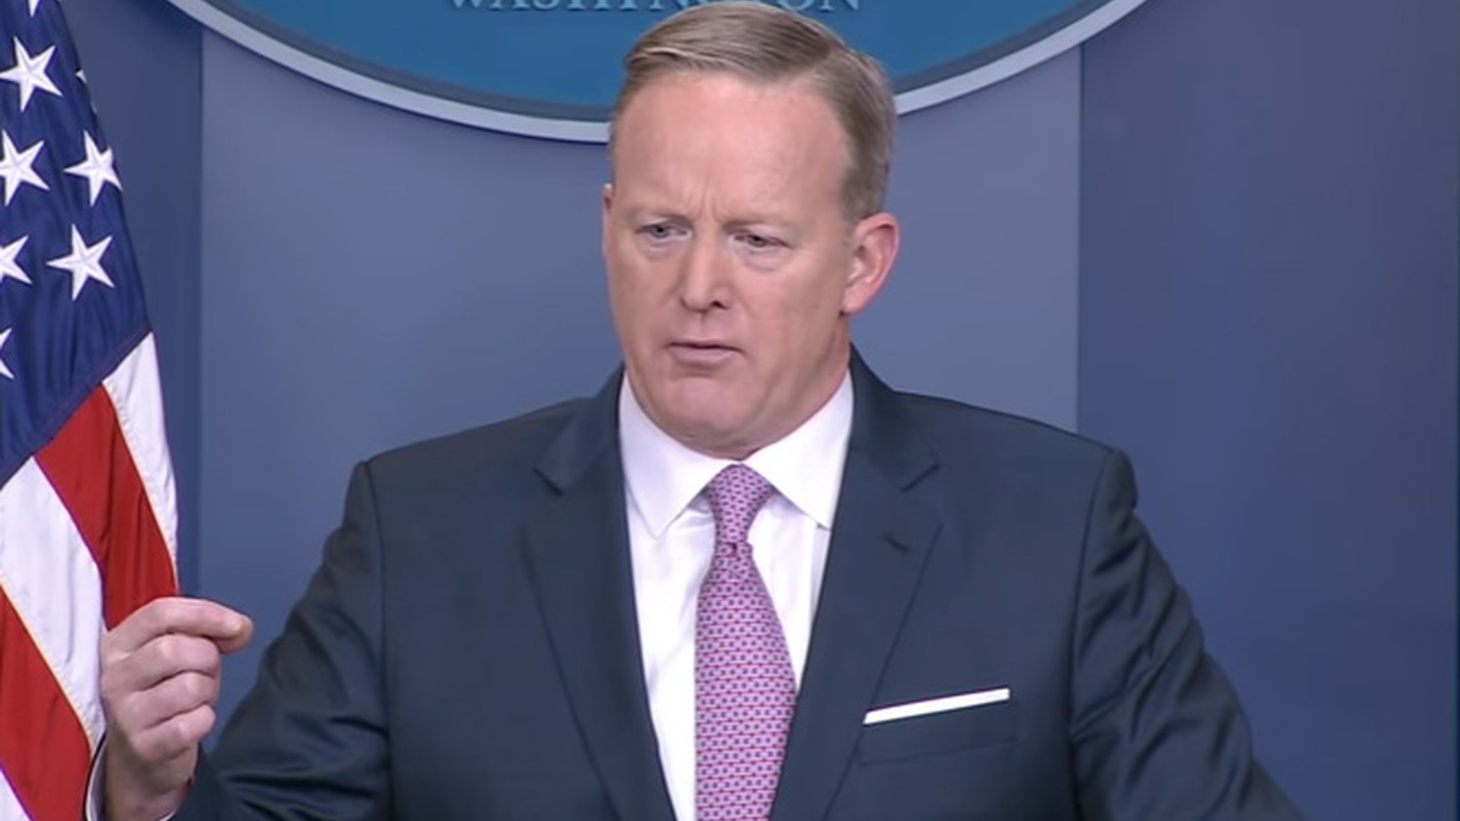 """On Saturday, President Trump started to make nice with agents at CIA headquarters, but quickly turned to insulting the news media as """"among the most dishonest human beings on Earth."""" Press Secretary Sean Spicer followed up with a bitter attack of his own."""